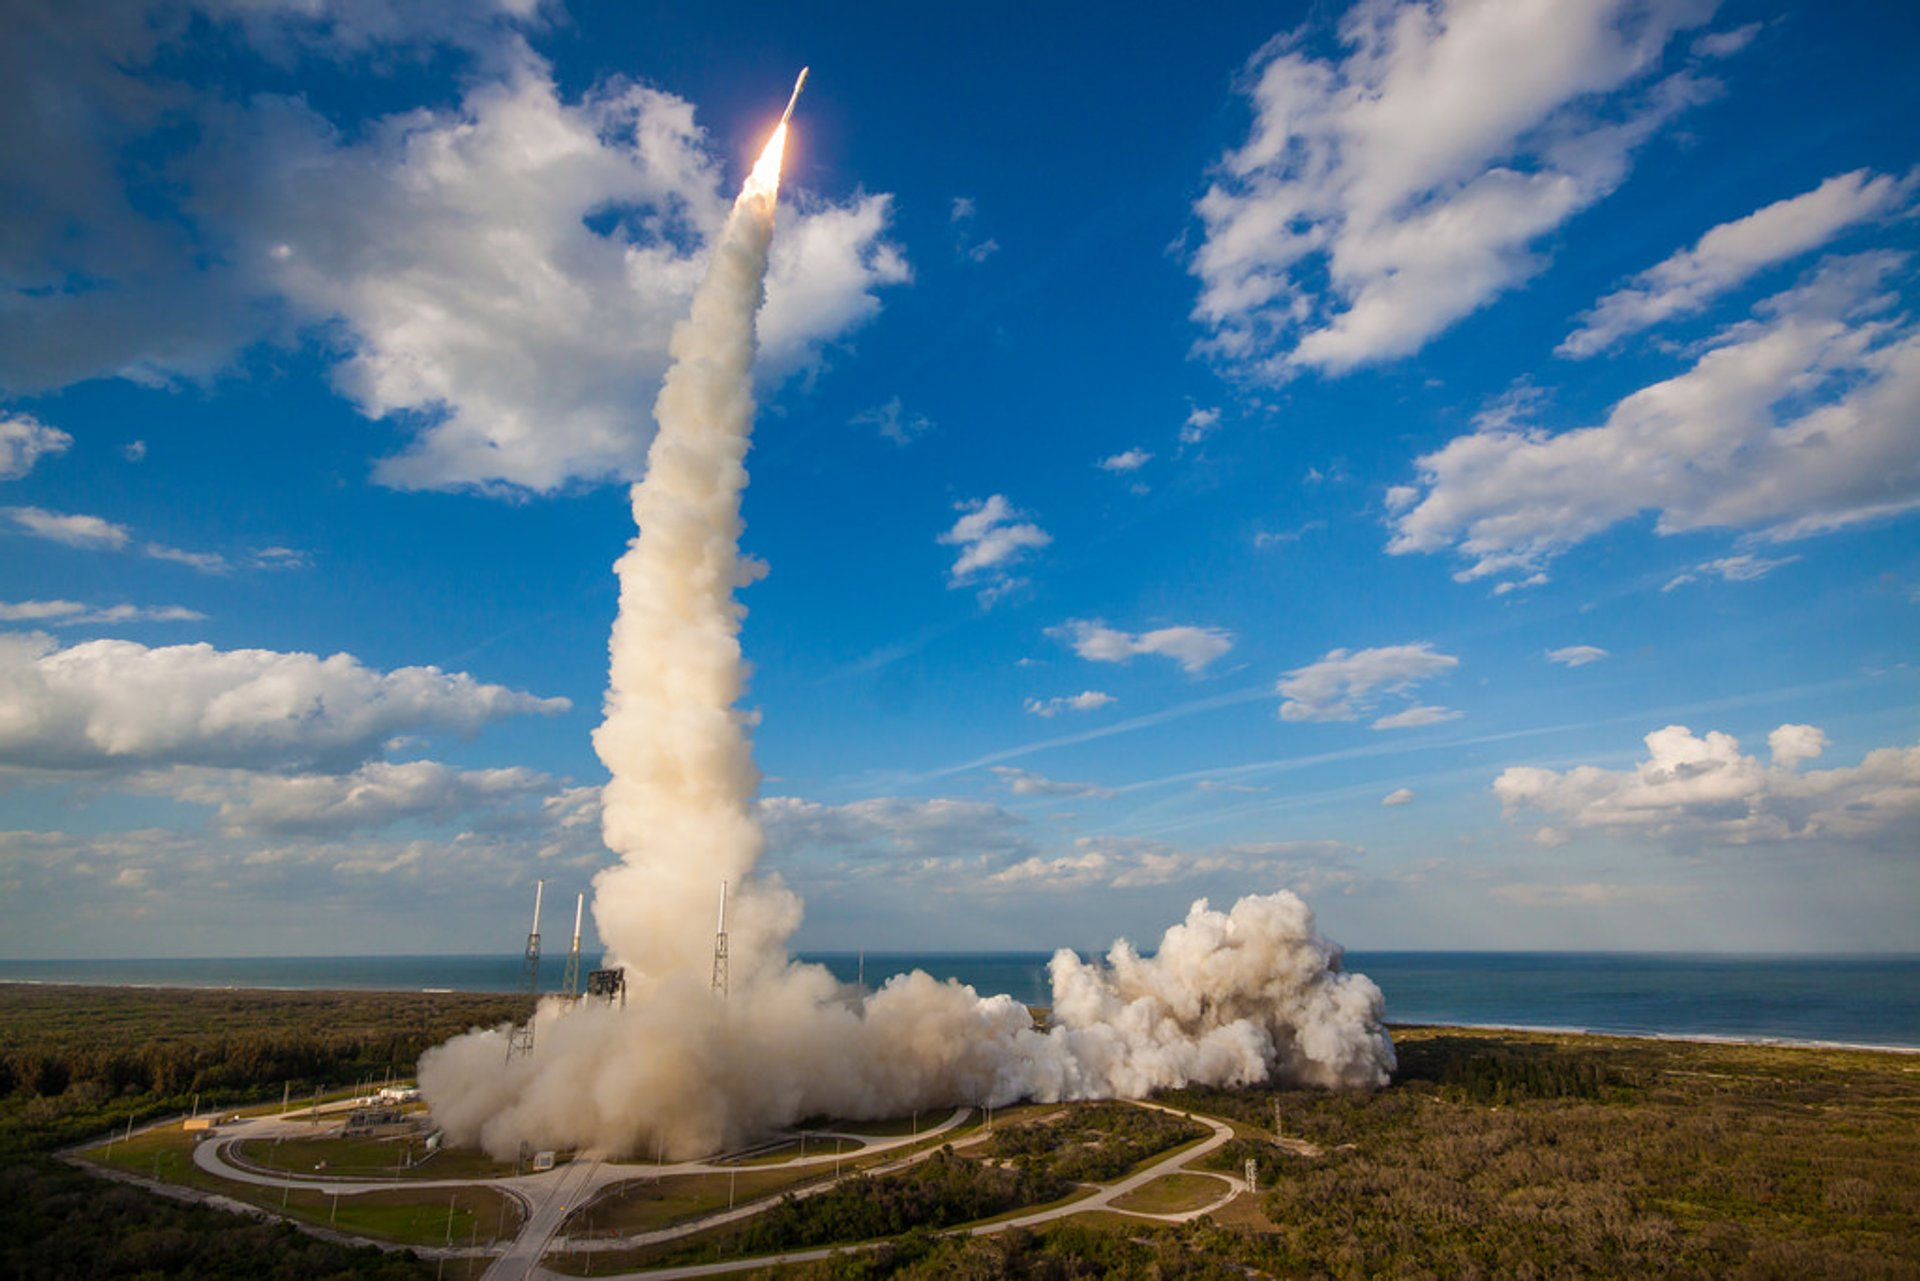 Rocket Launch at Kennedy Space Center in Florida 2020 - Best Time